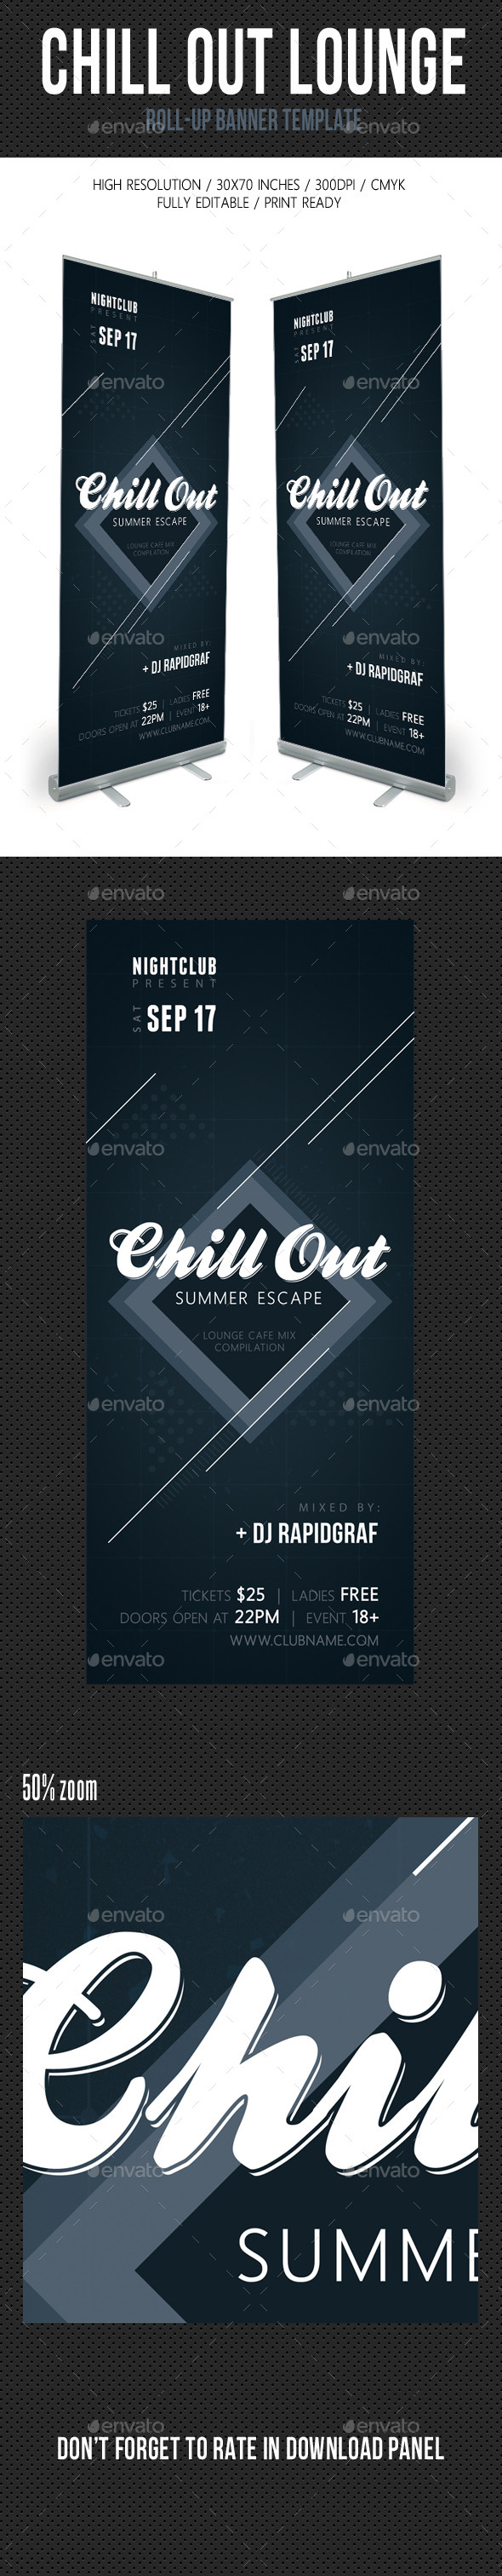 Chill Out Lounge Banner Template - Signage Print Templates